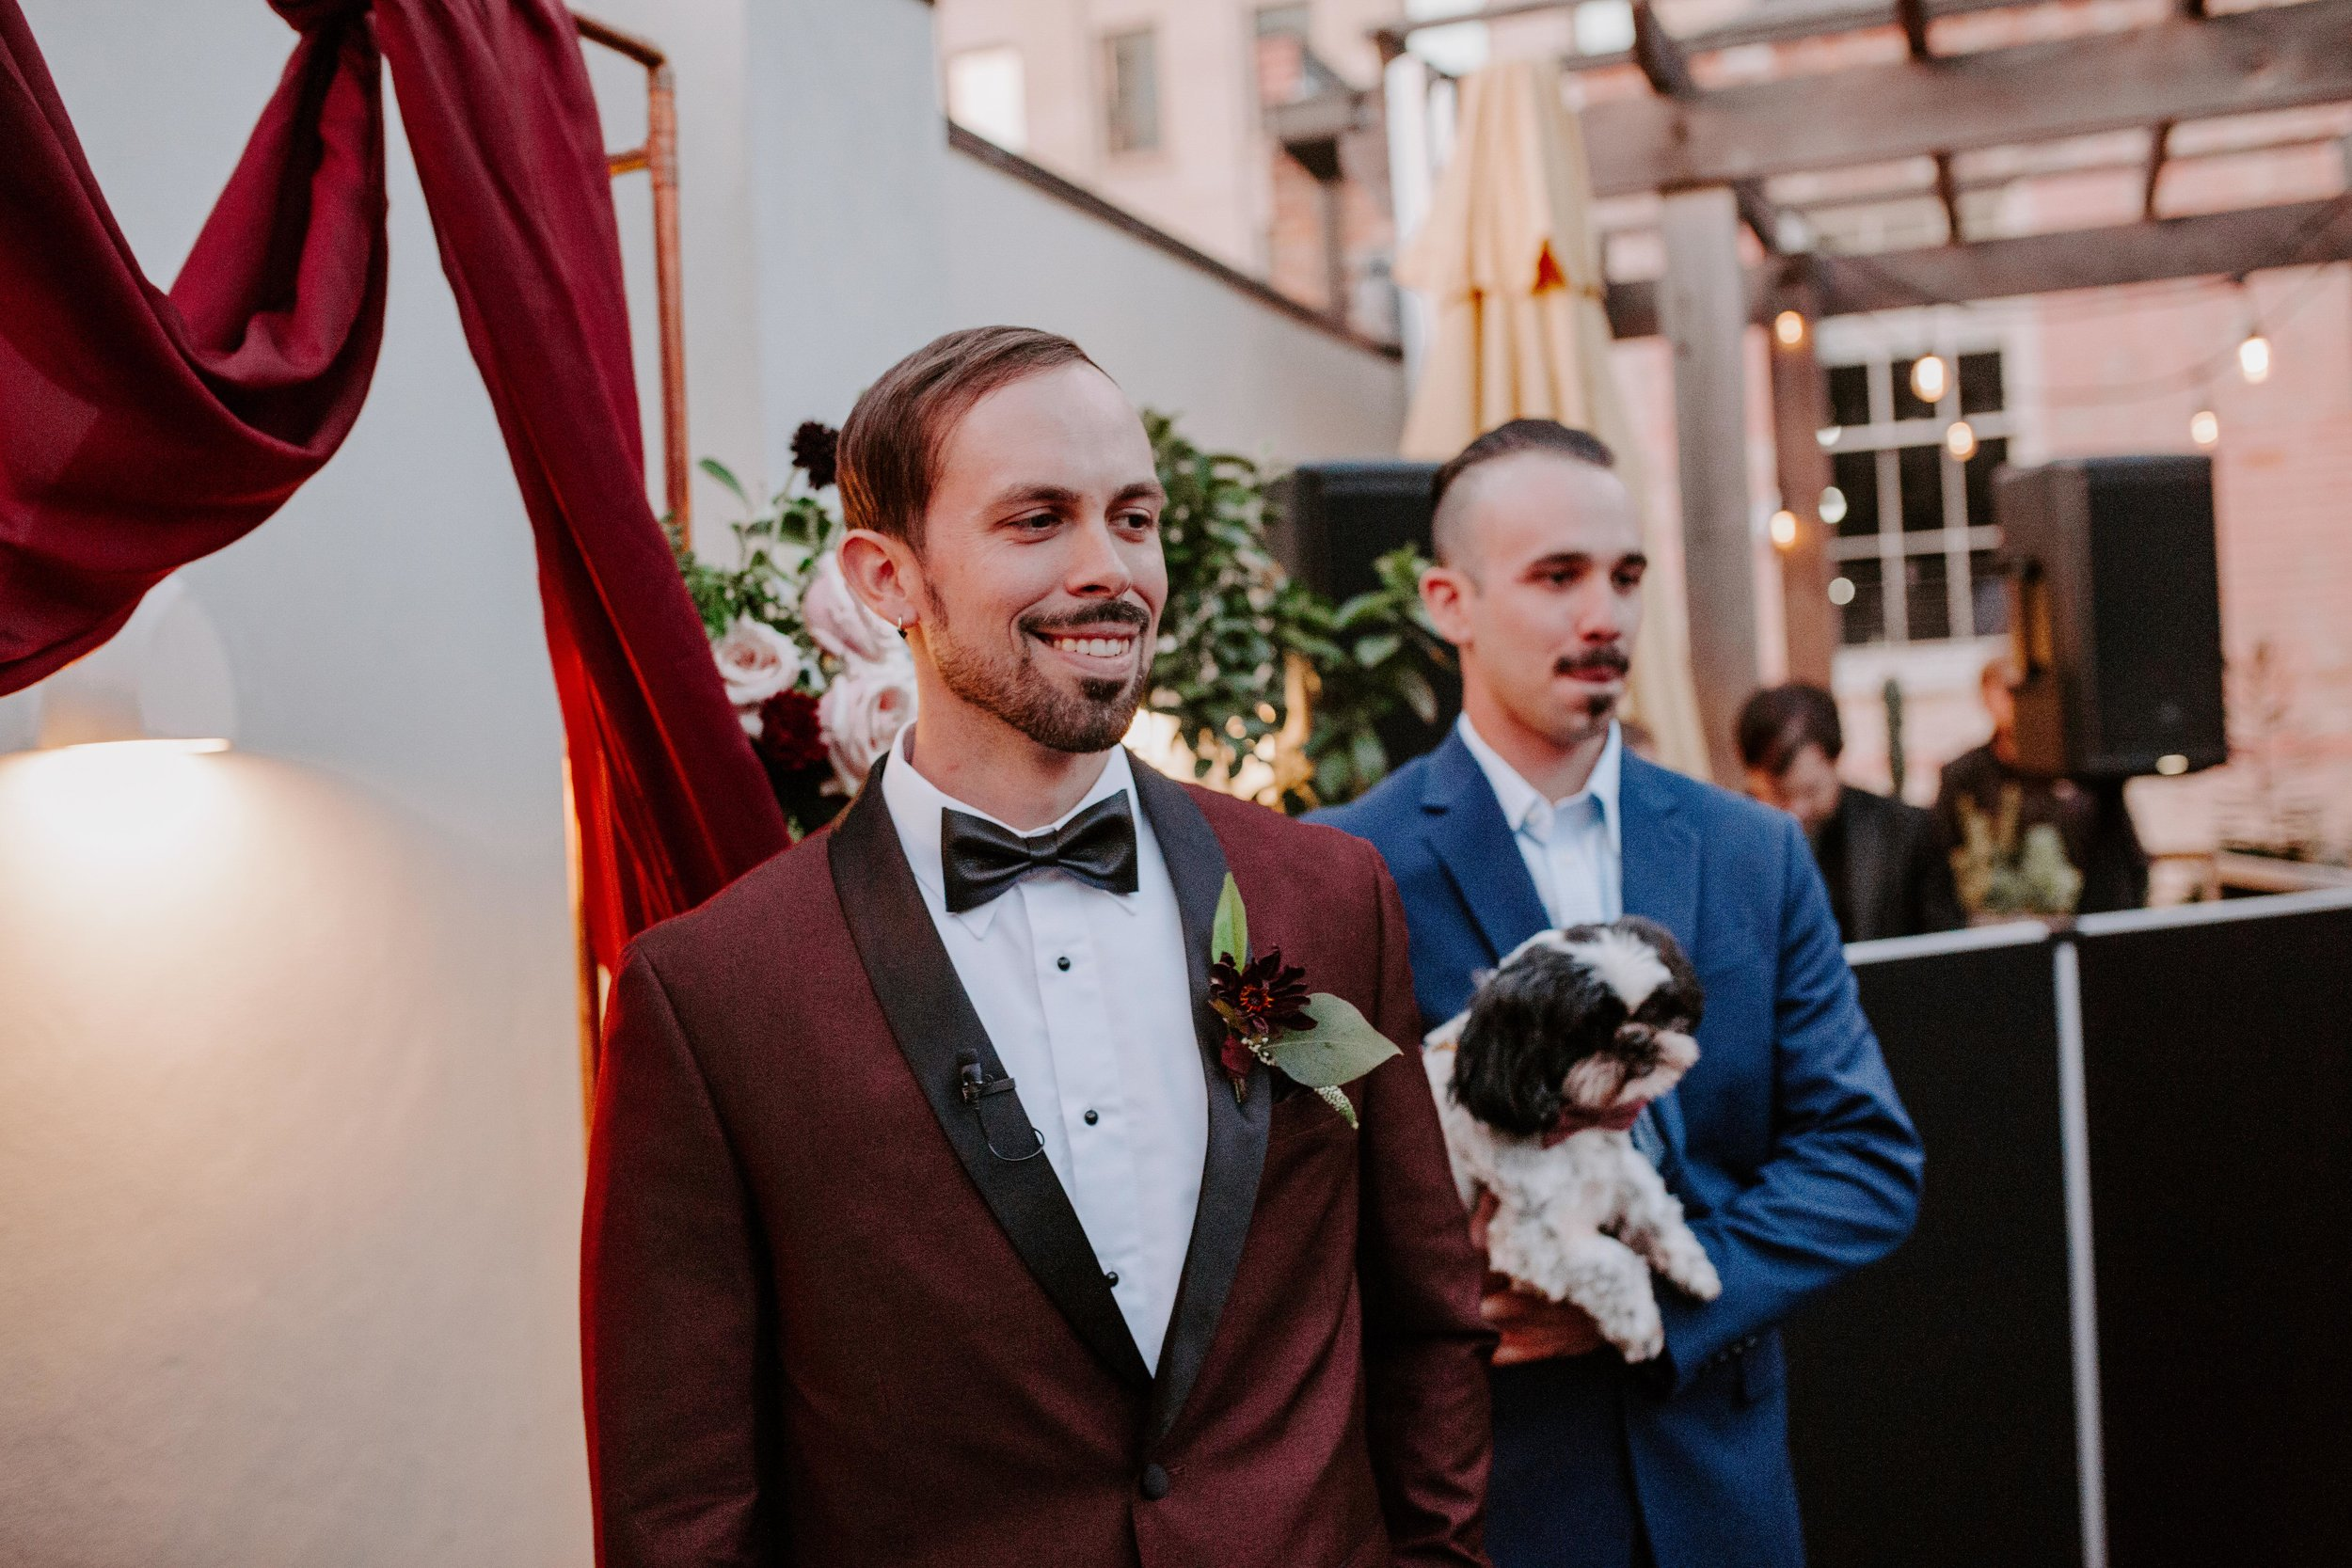 Catahoula Hotel Rooftop Wedding Ceremony New Orleans Wedding Photographer Ashley Biltz Photography37.jpg